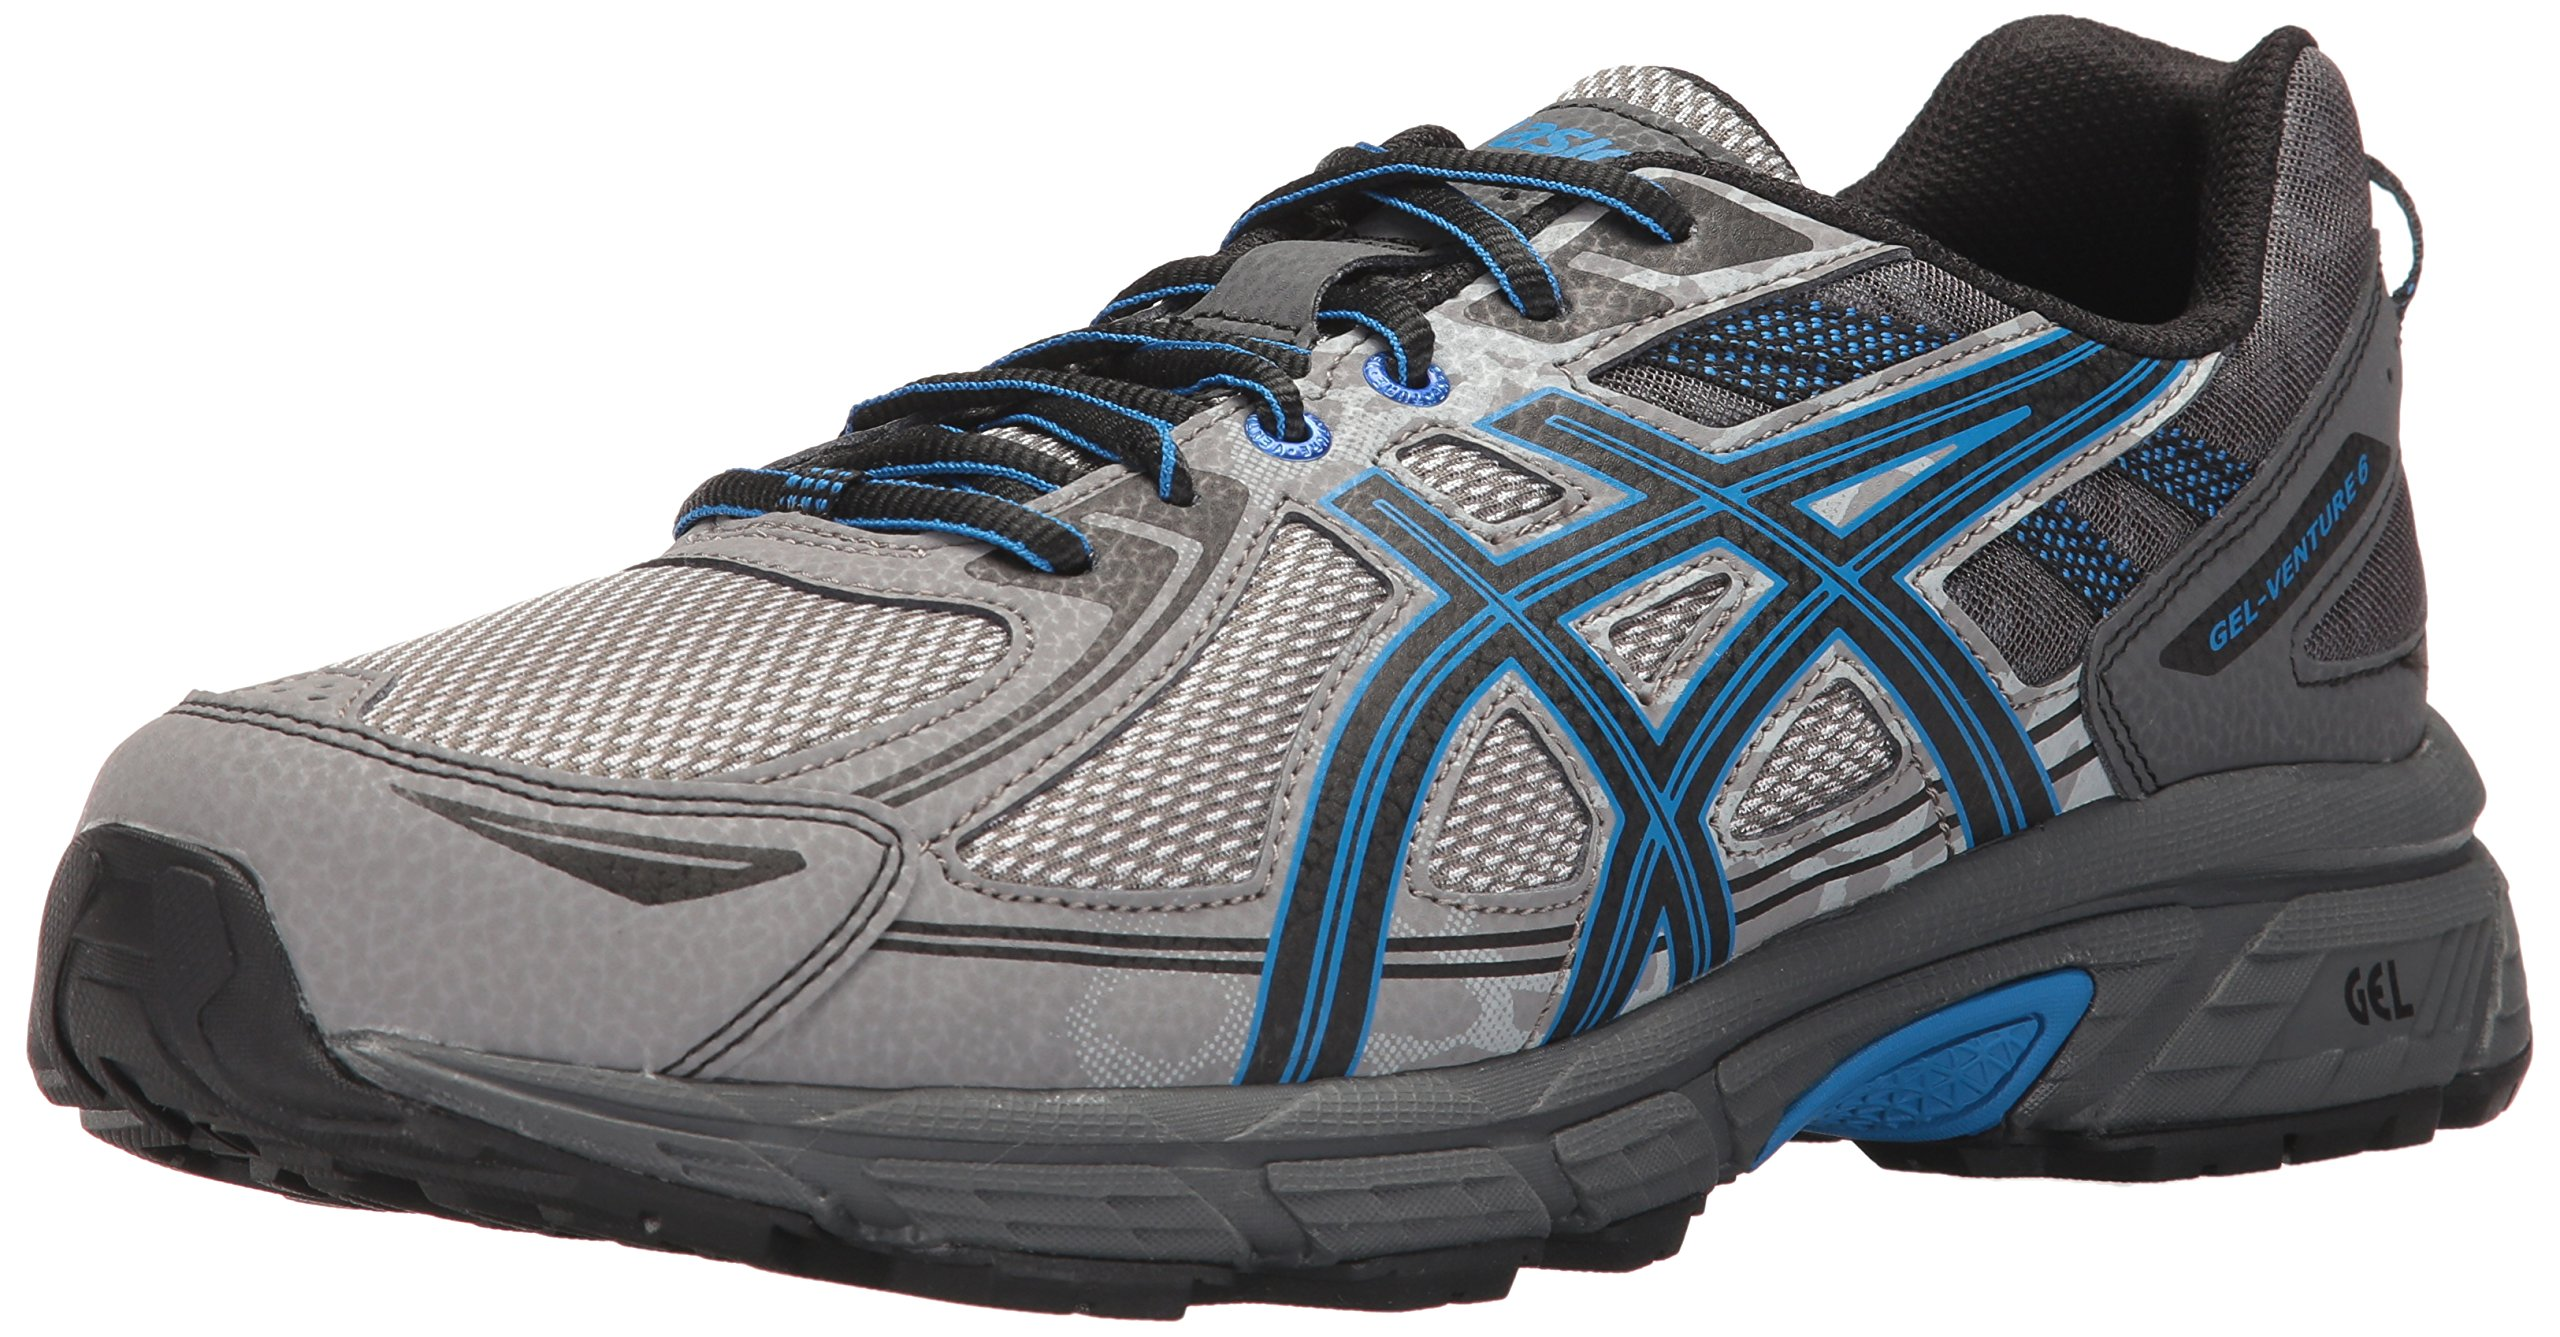 ASICS Mens Gel-Venture 6 Running Shoe, Aluminum/Black/Directoire Blue, 13 4E US